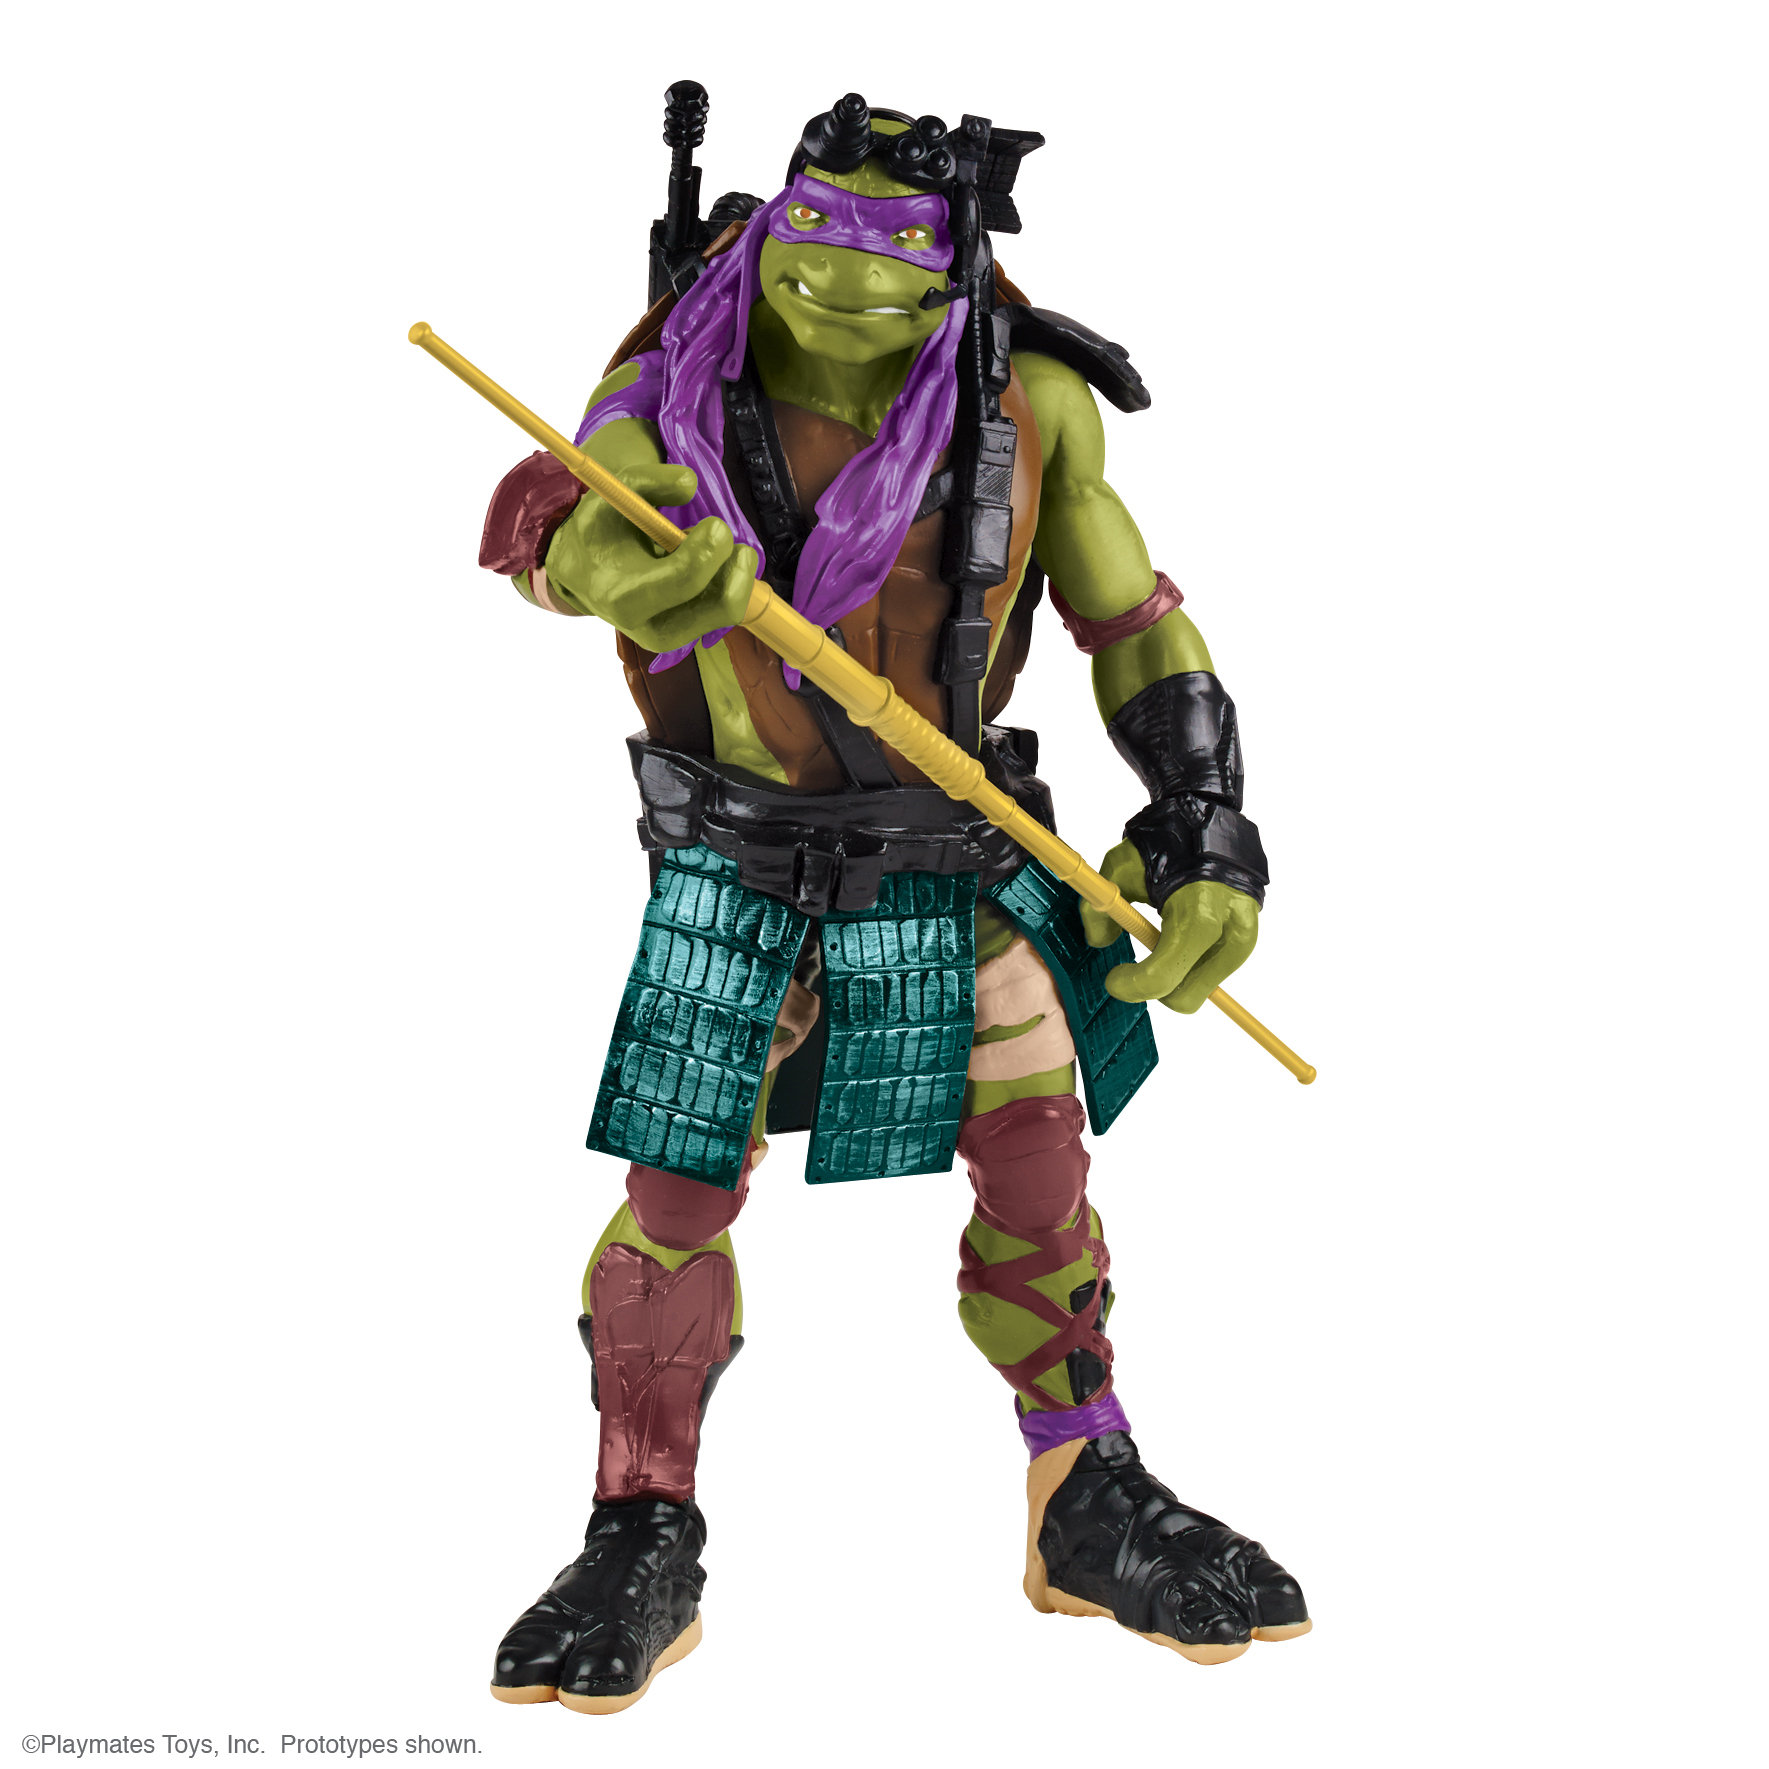 Tmnt Movie Toys : Tmnt movie toys press release the toyark news